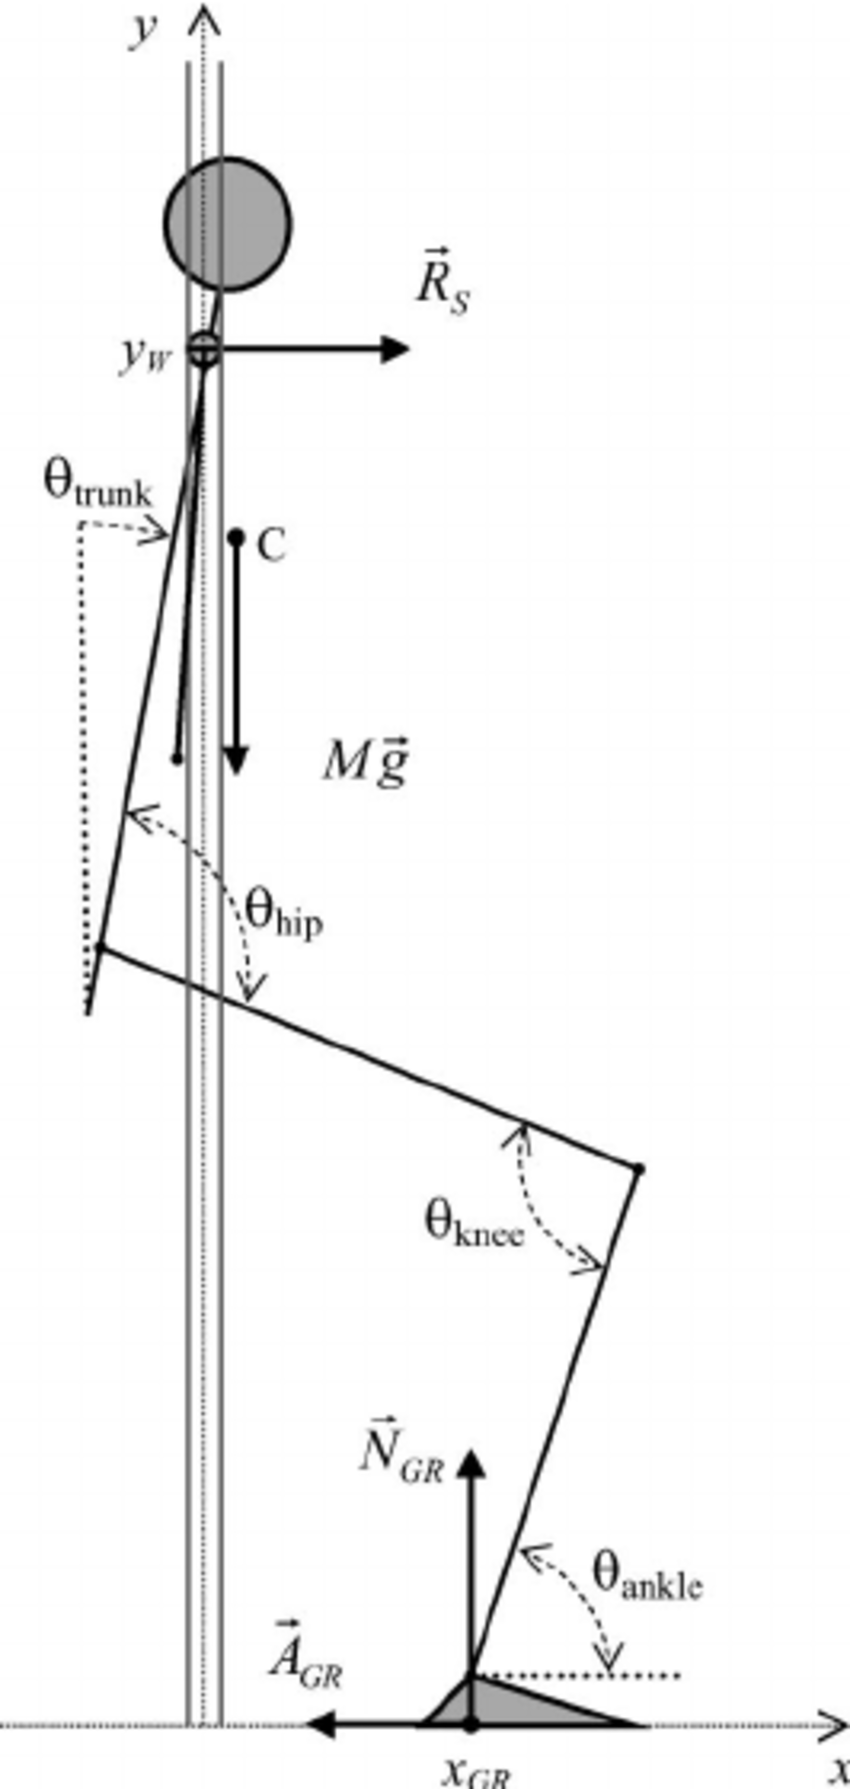 Schematic representation of the fundamental elements of